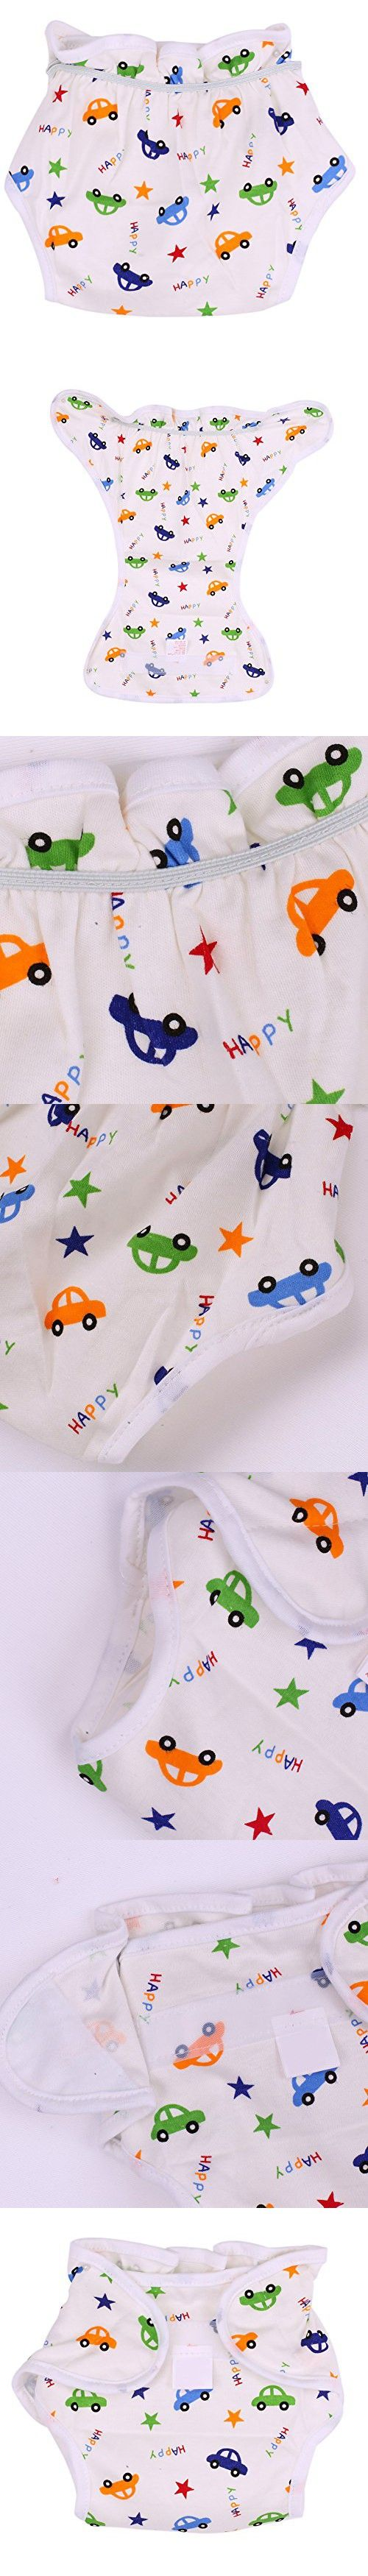 Easydeal Baby Girls Washable Cotton Training Pants Kids Potty Diaper Nappy Underwear (90 for 1-2Y, Car)